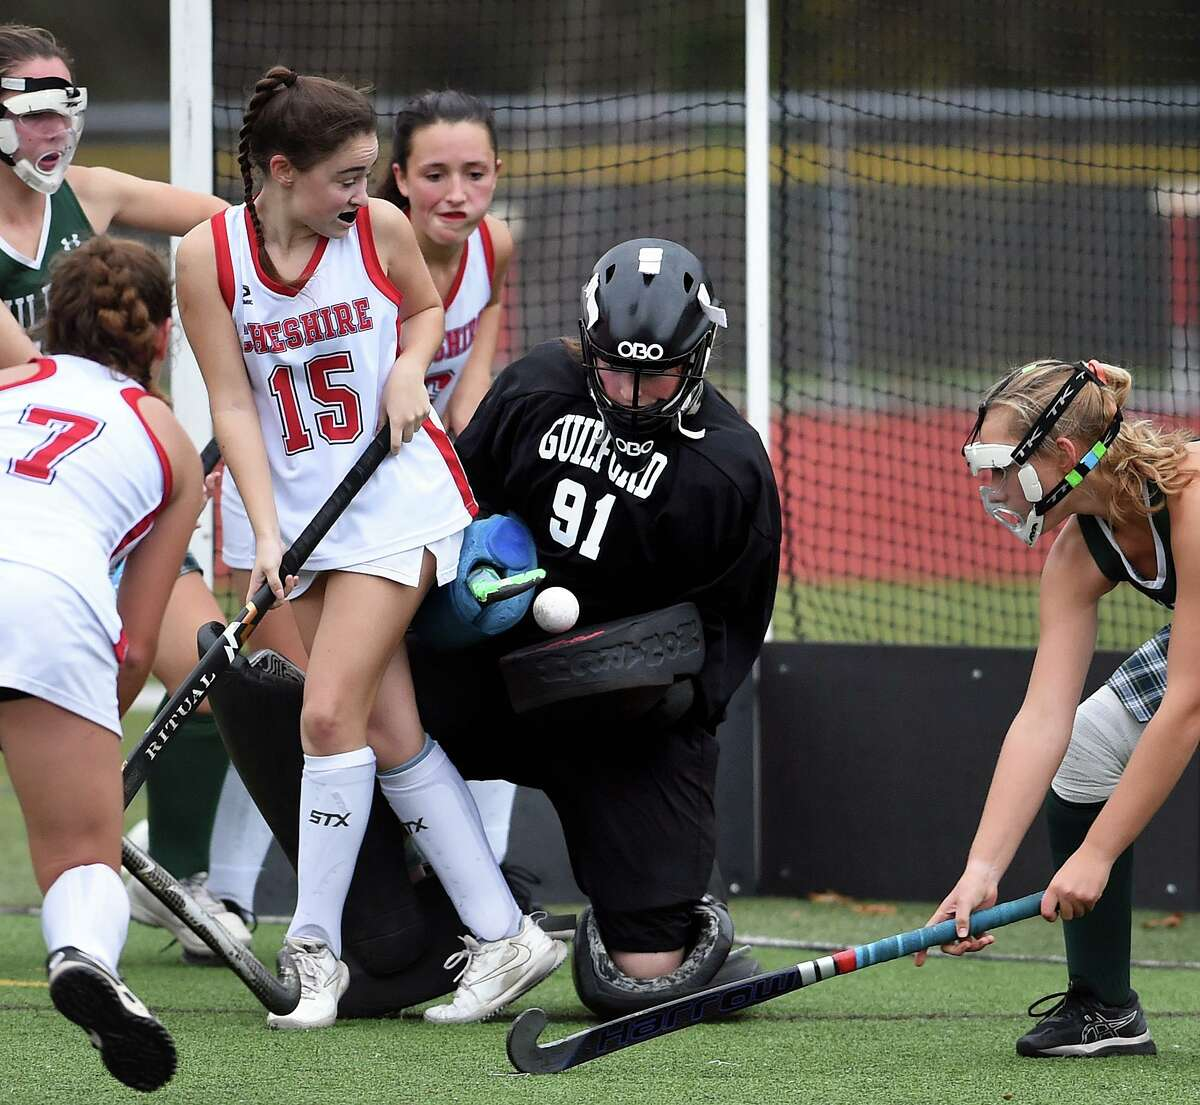 Guilford goalkeeper Eve Young (center) blocks a shot from Cheshire in the fourth quarter of the SCC Division A field hockey championship at Cheshire High School on November 11, 2020.